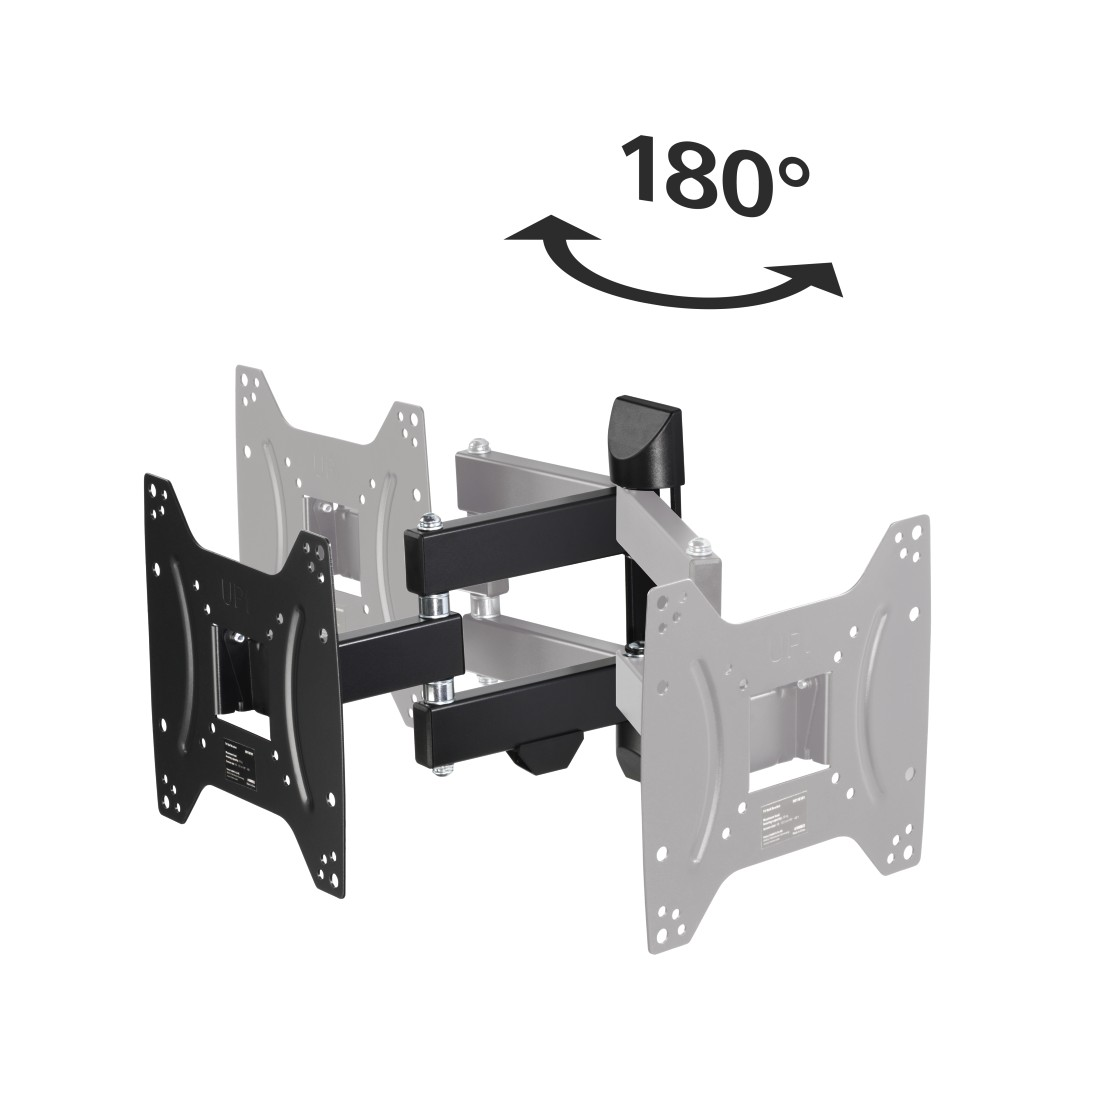 "dex2 High-Res Detail 2 - Hama, FULLMOTION TV Wall Bracket, 1 Star, 200x200, 122cm (48""), 2 arms, black"